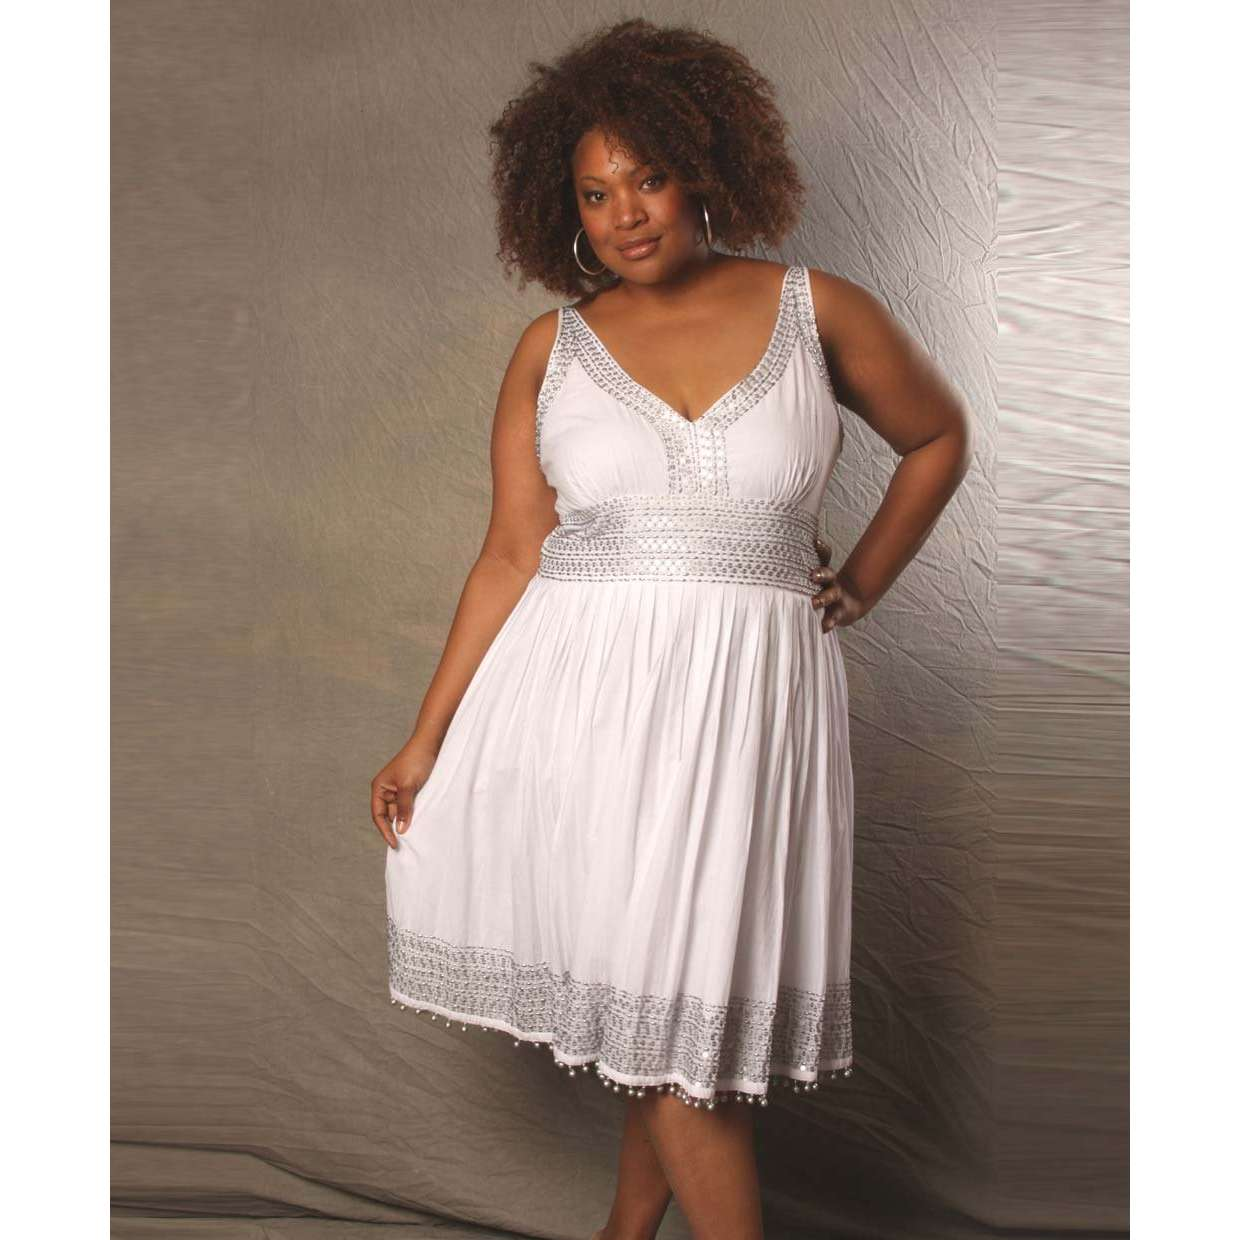 White Dress Pictures: Plus Size White Summer Dress